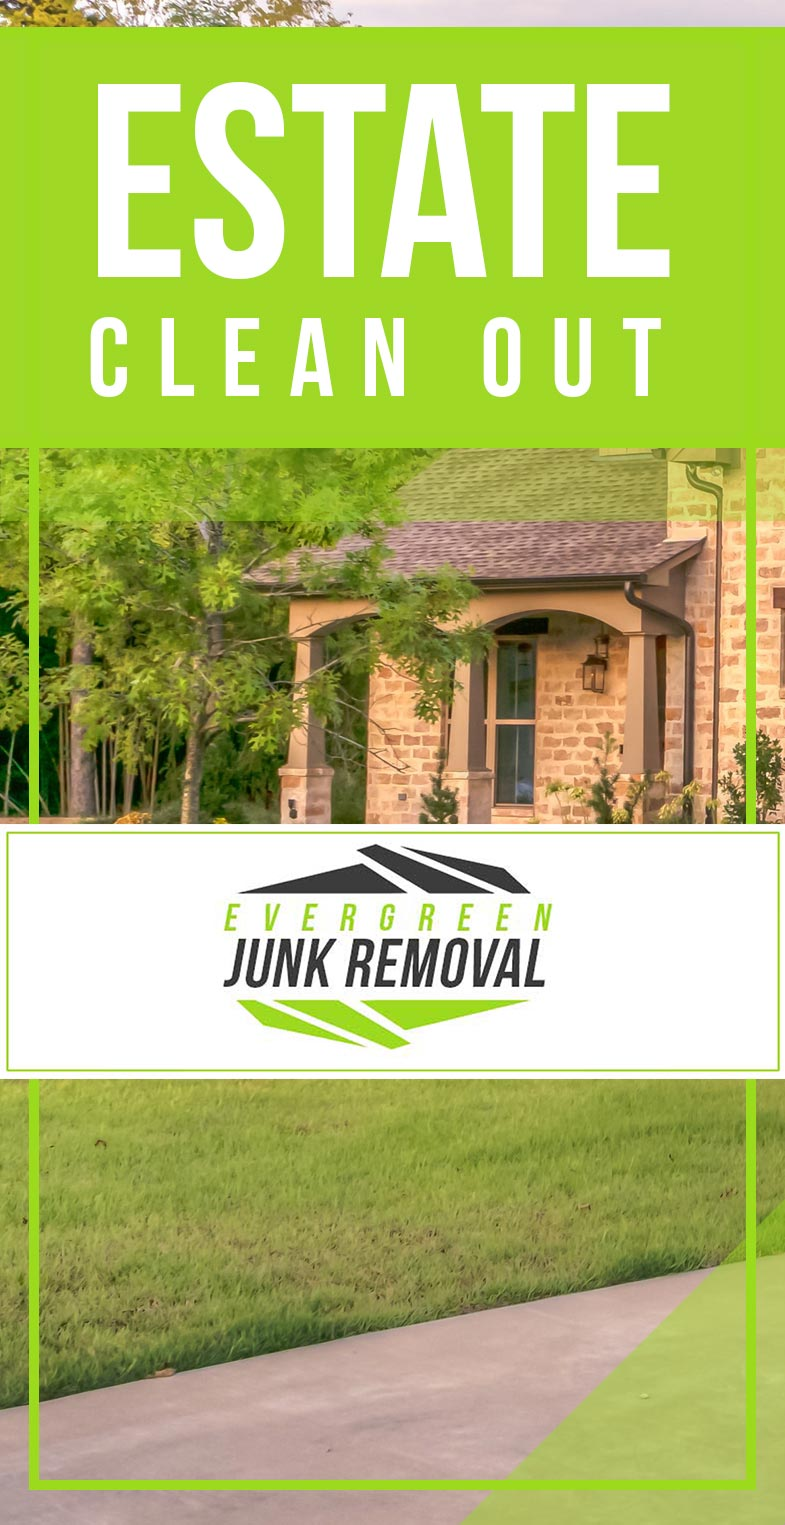 Texas City Property Clean Out